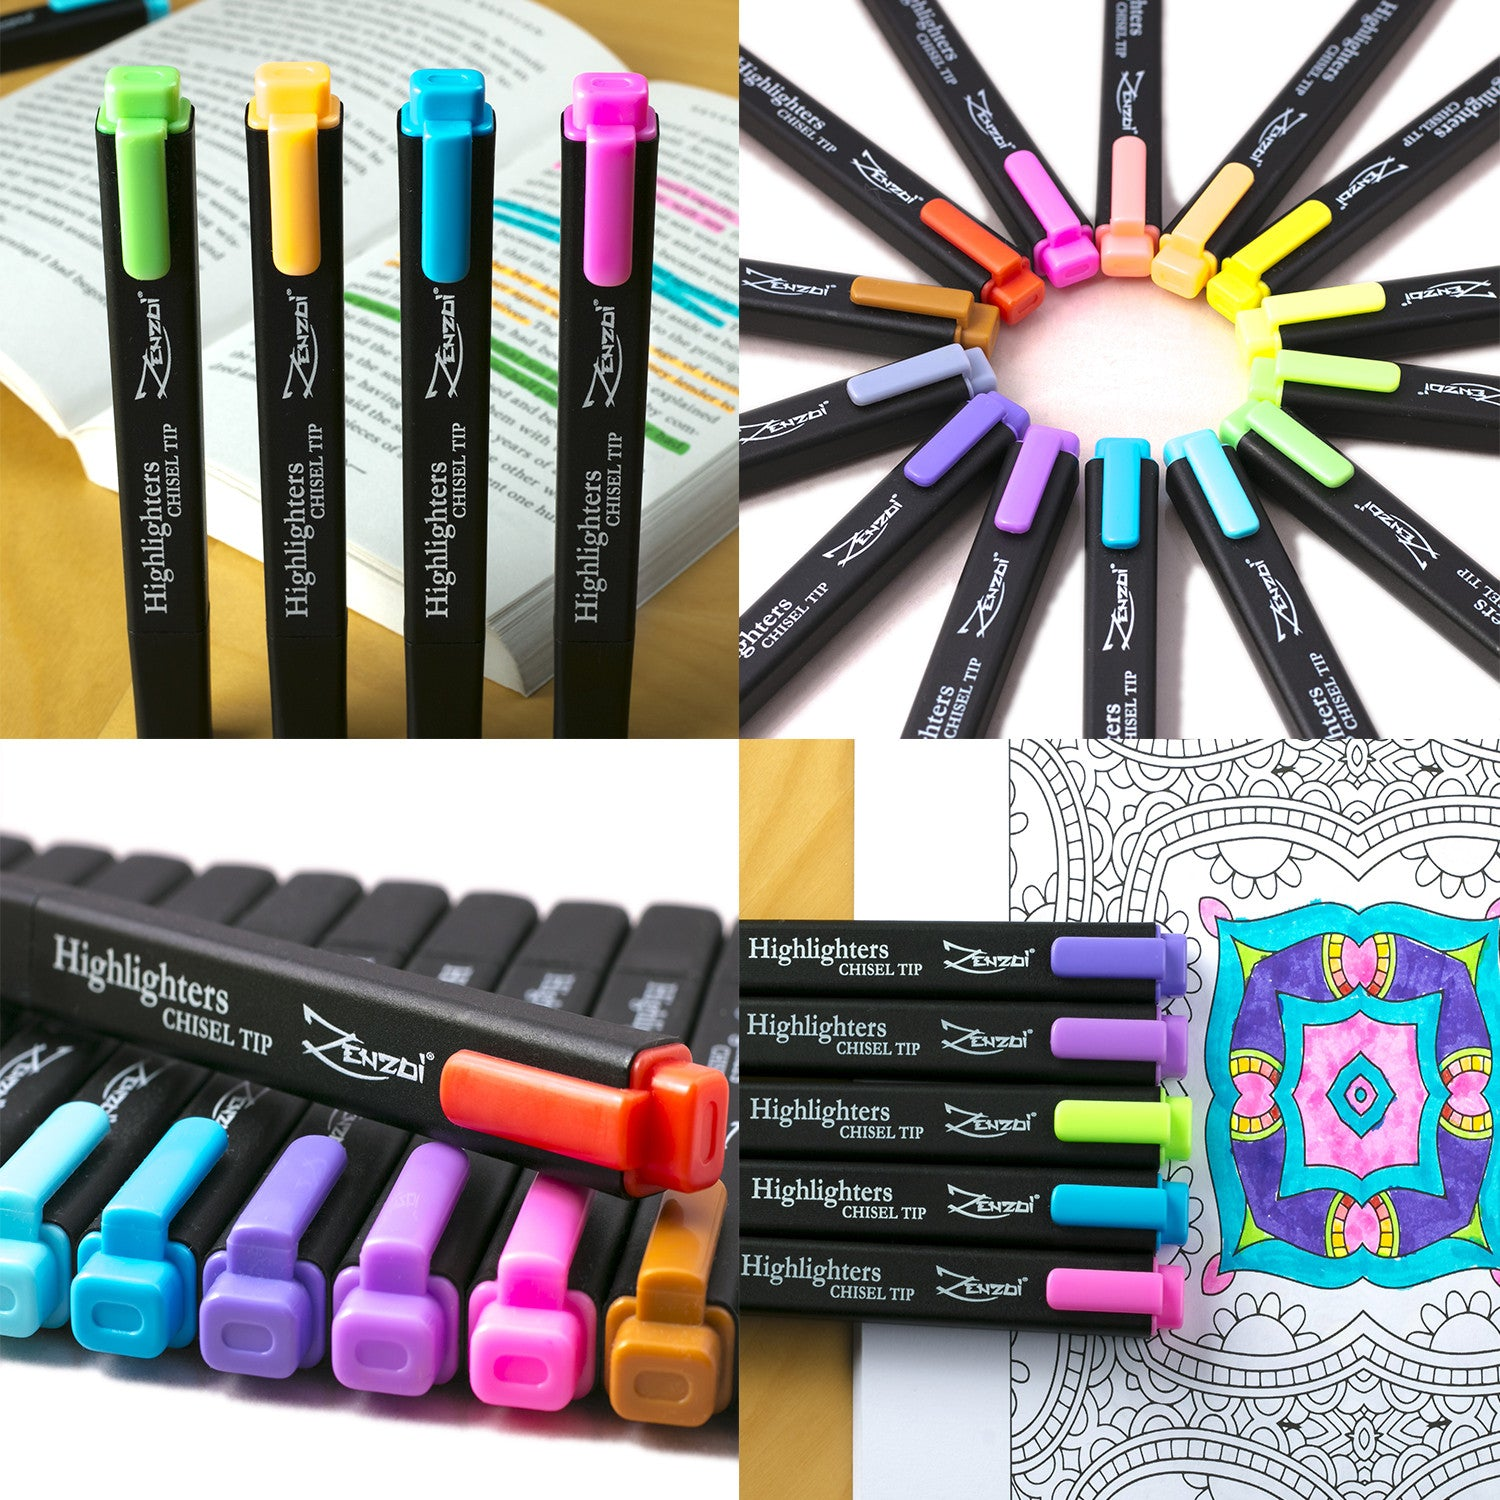 Best highlighter markers 14 Unique Colors